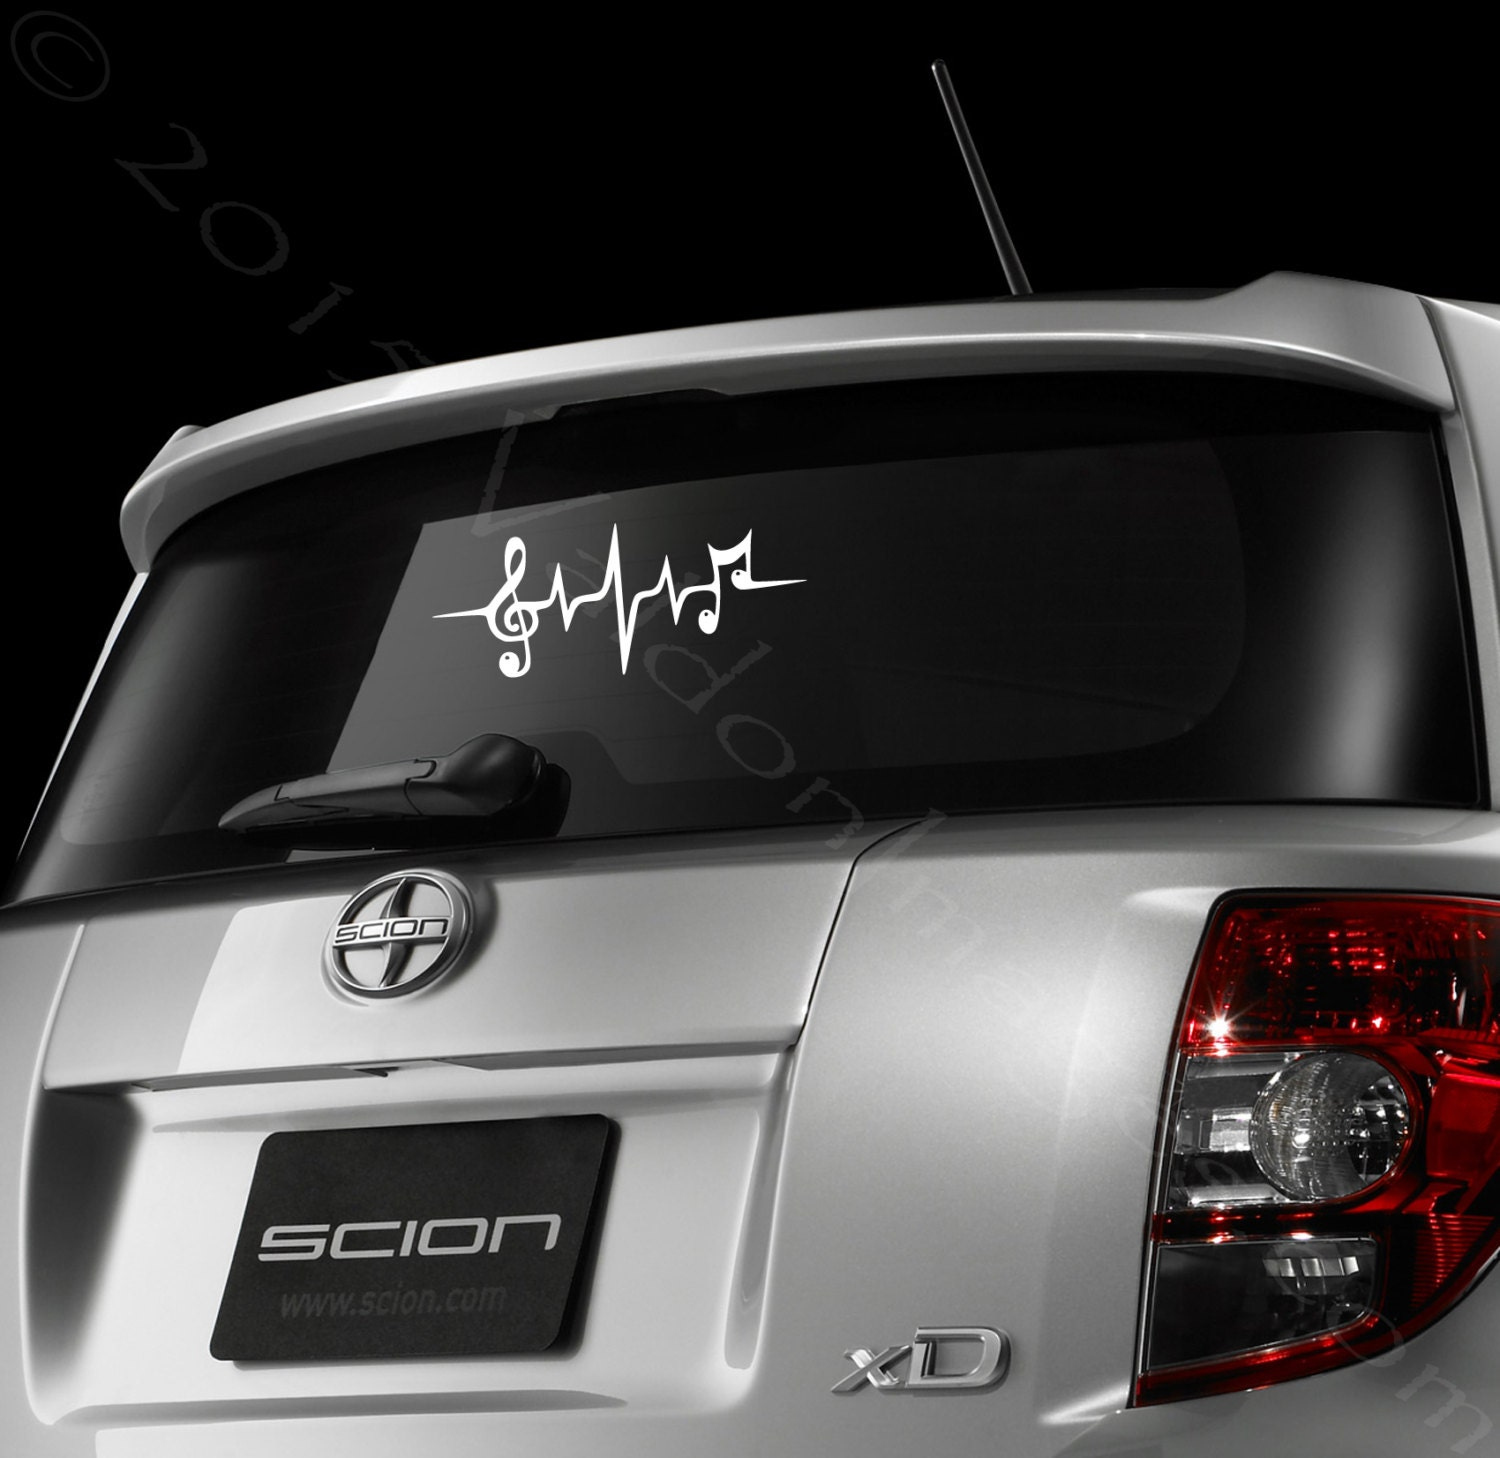 music note car decal heartbeat car sticker laptop decal. Black Bedroom Furniture Sets. Home Design Ideas